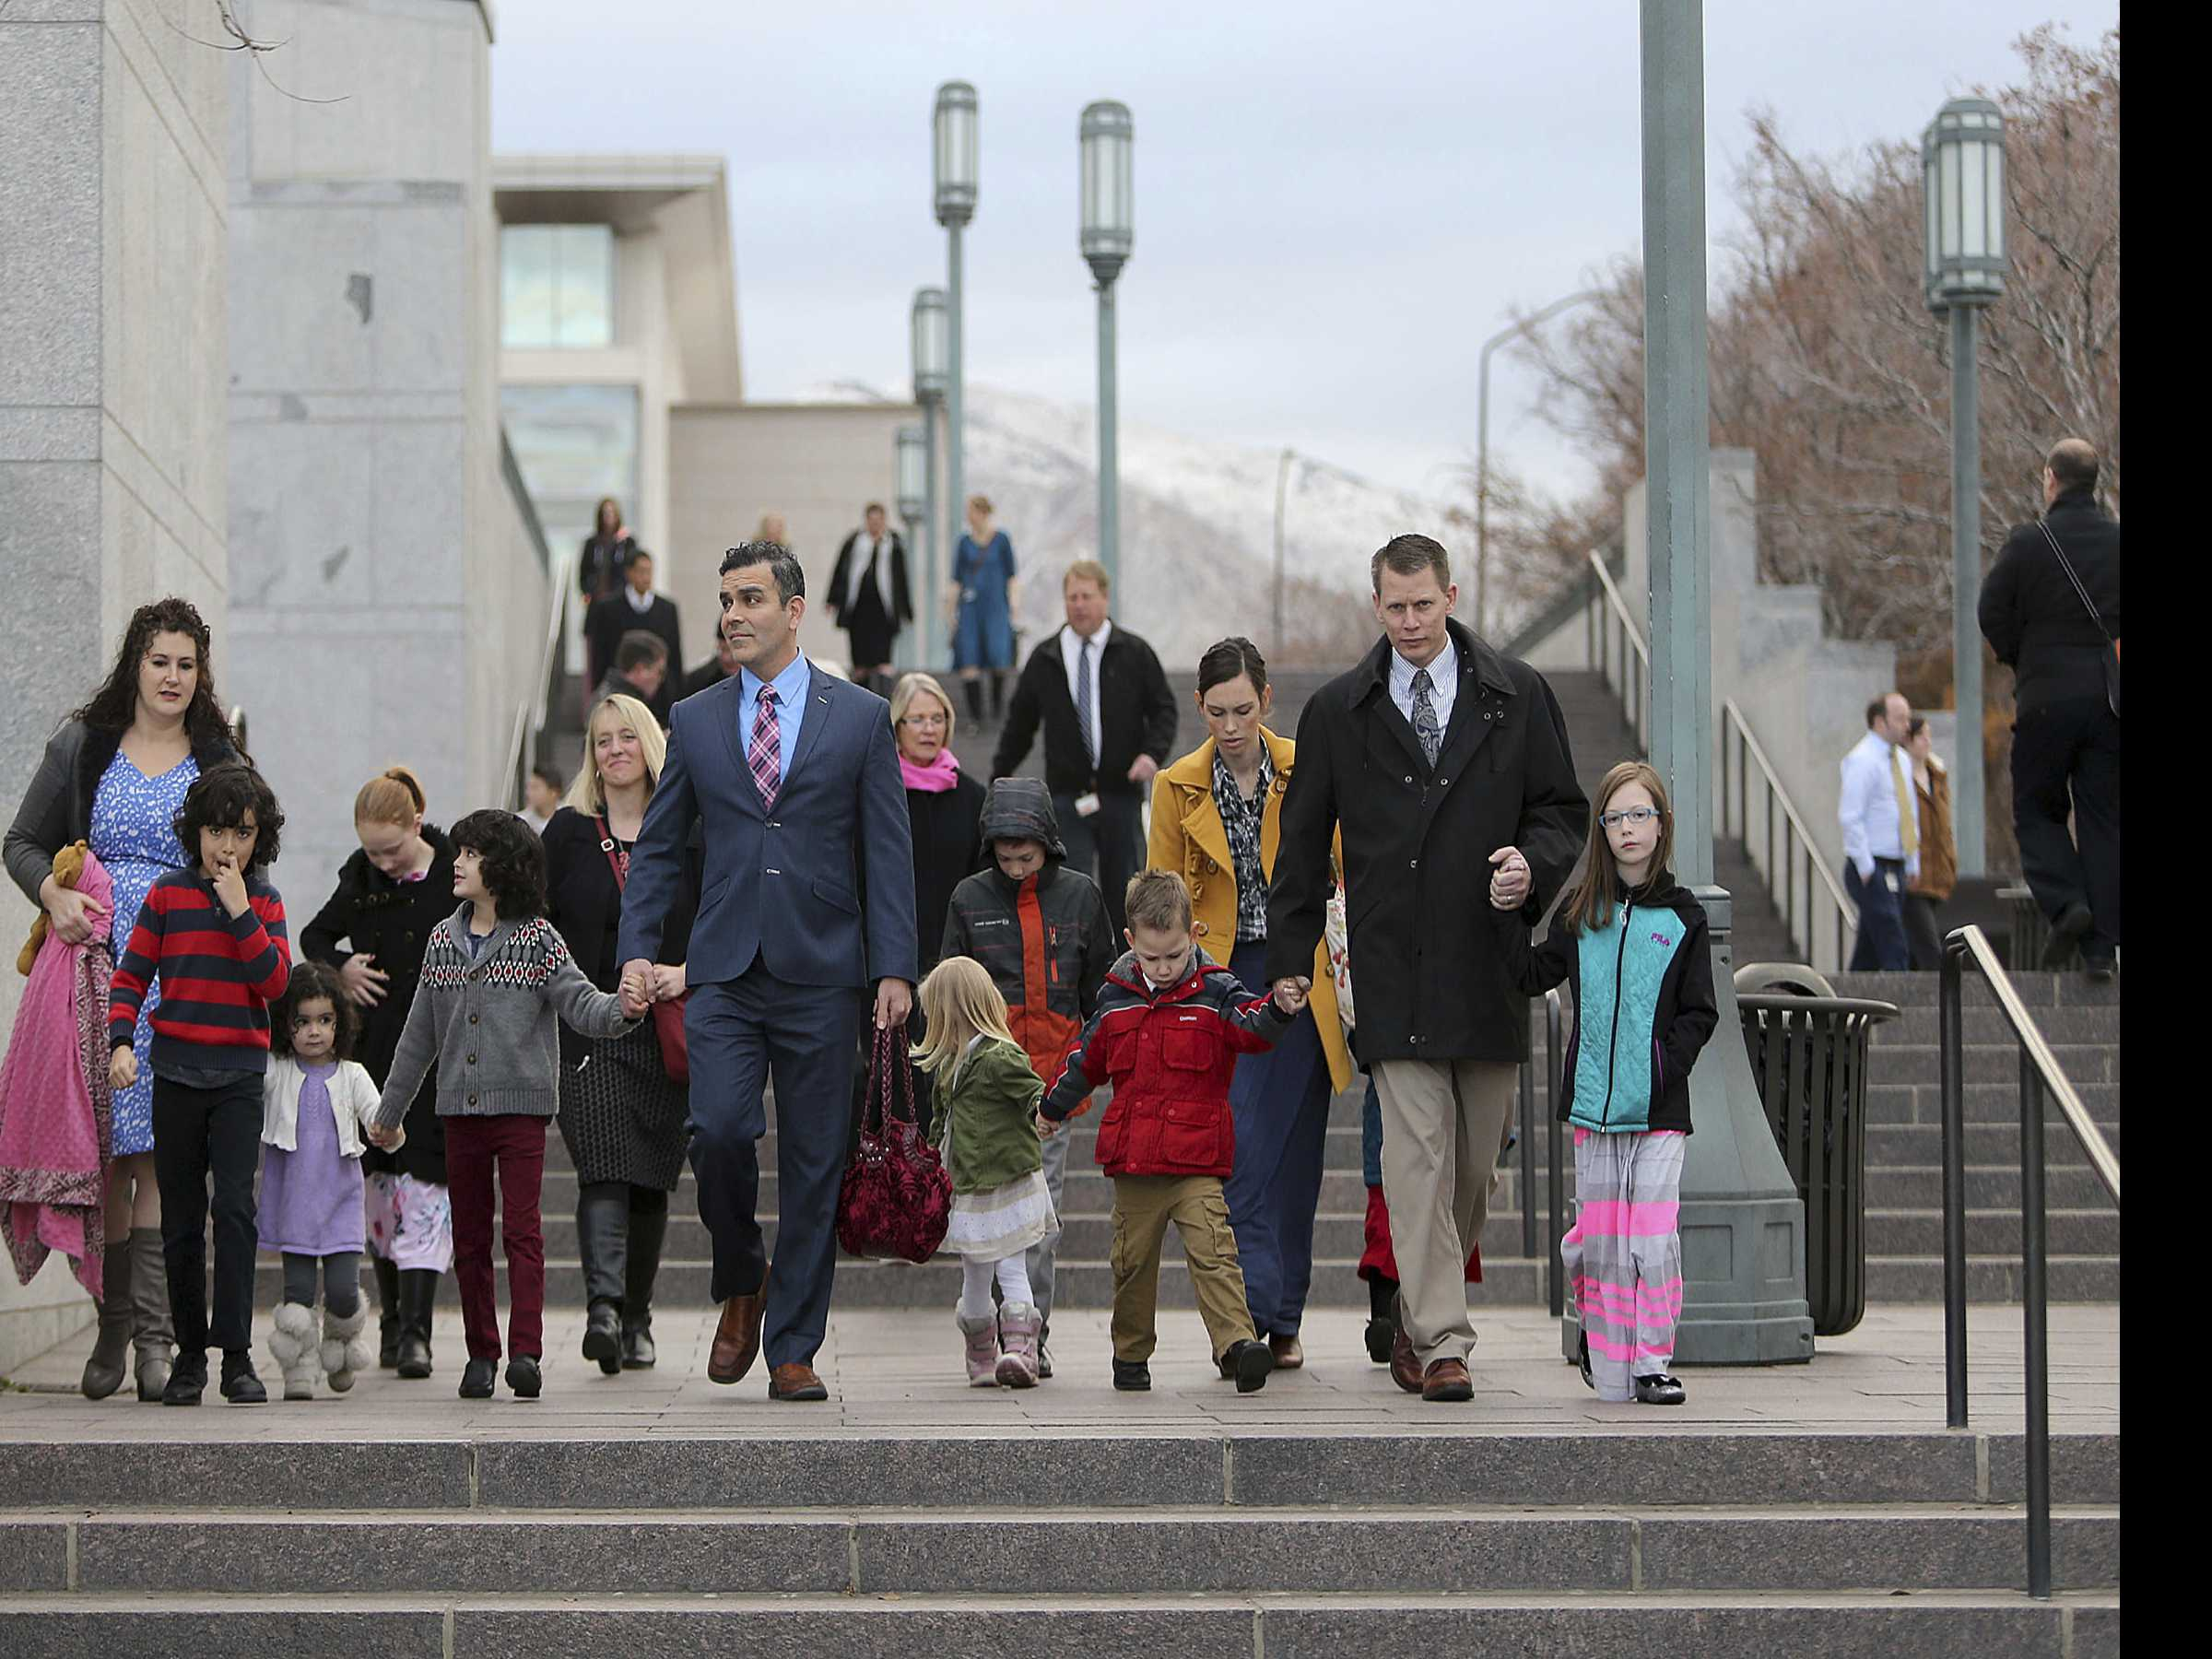 'Until We Meet Again': Thousands Mourn Mormon President